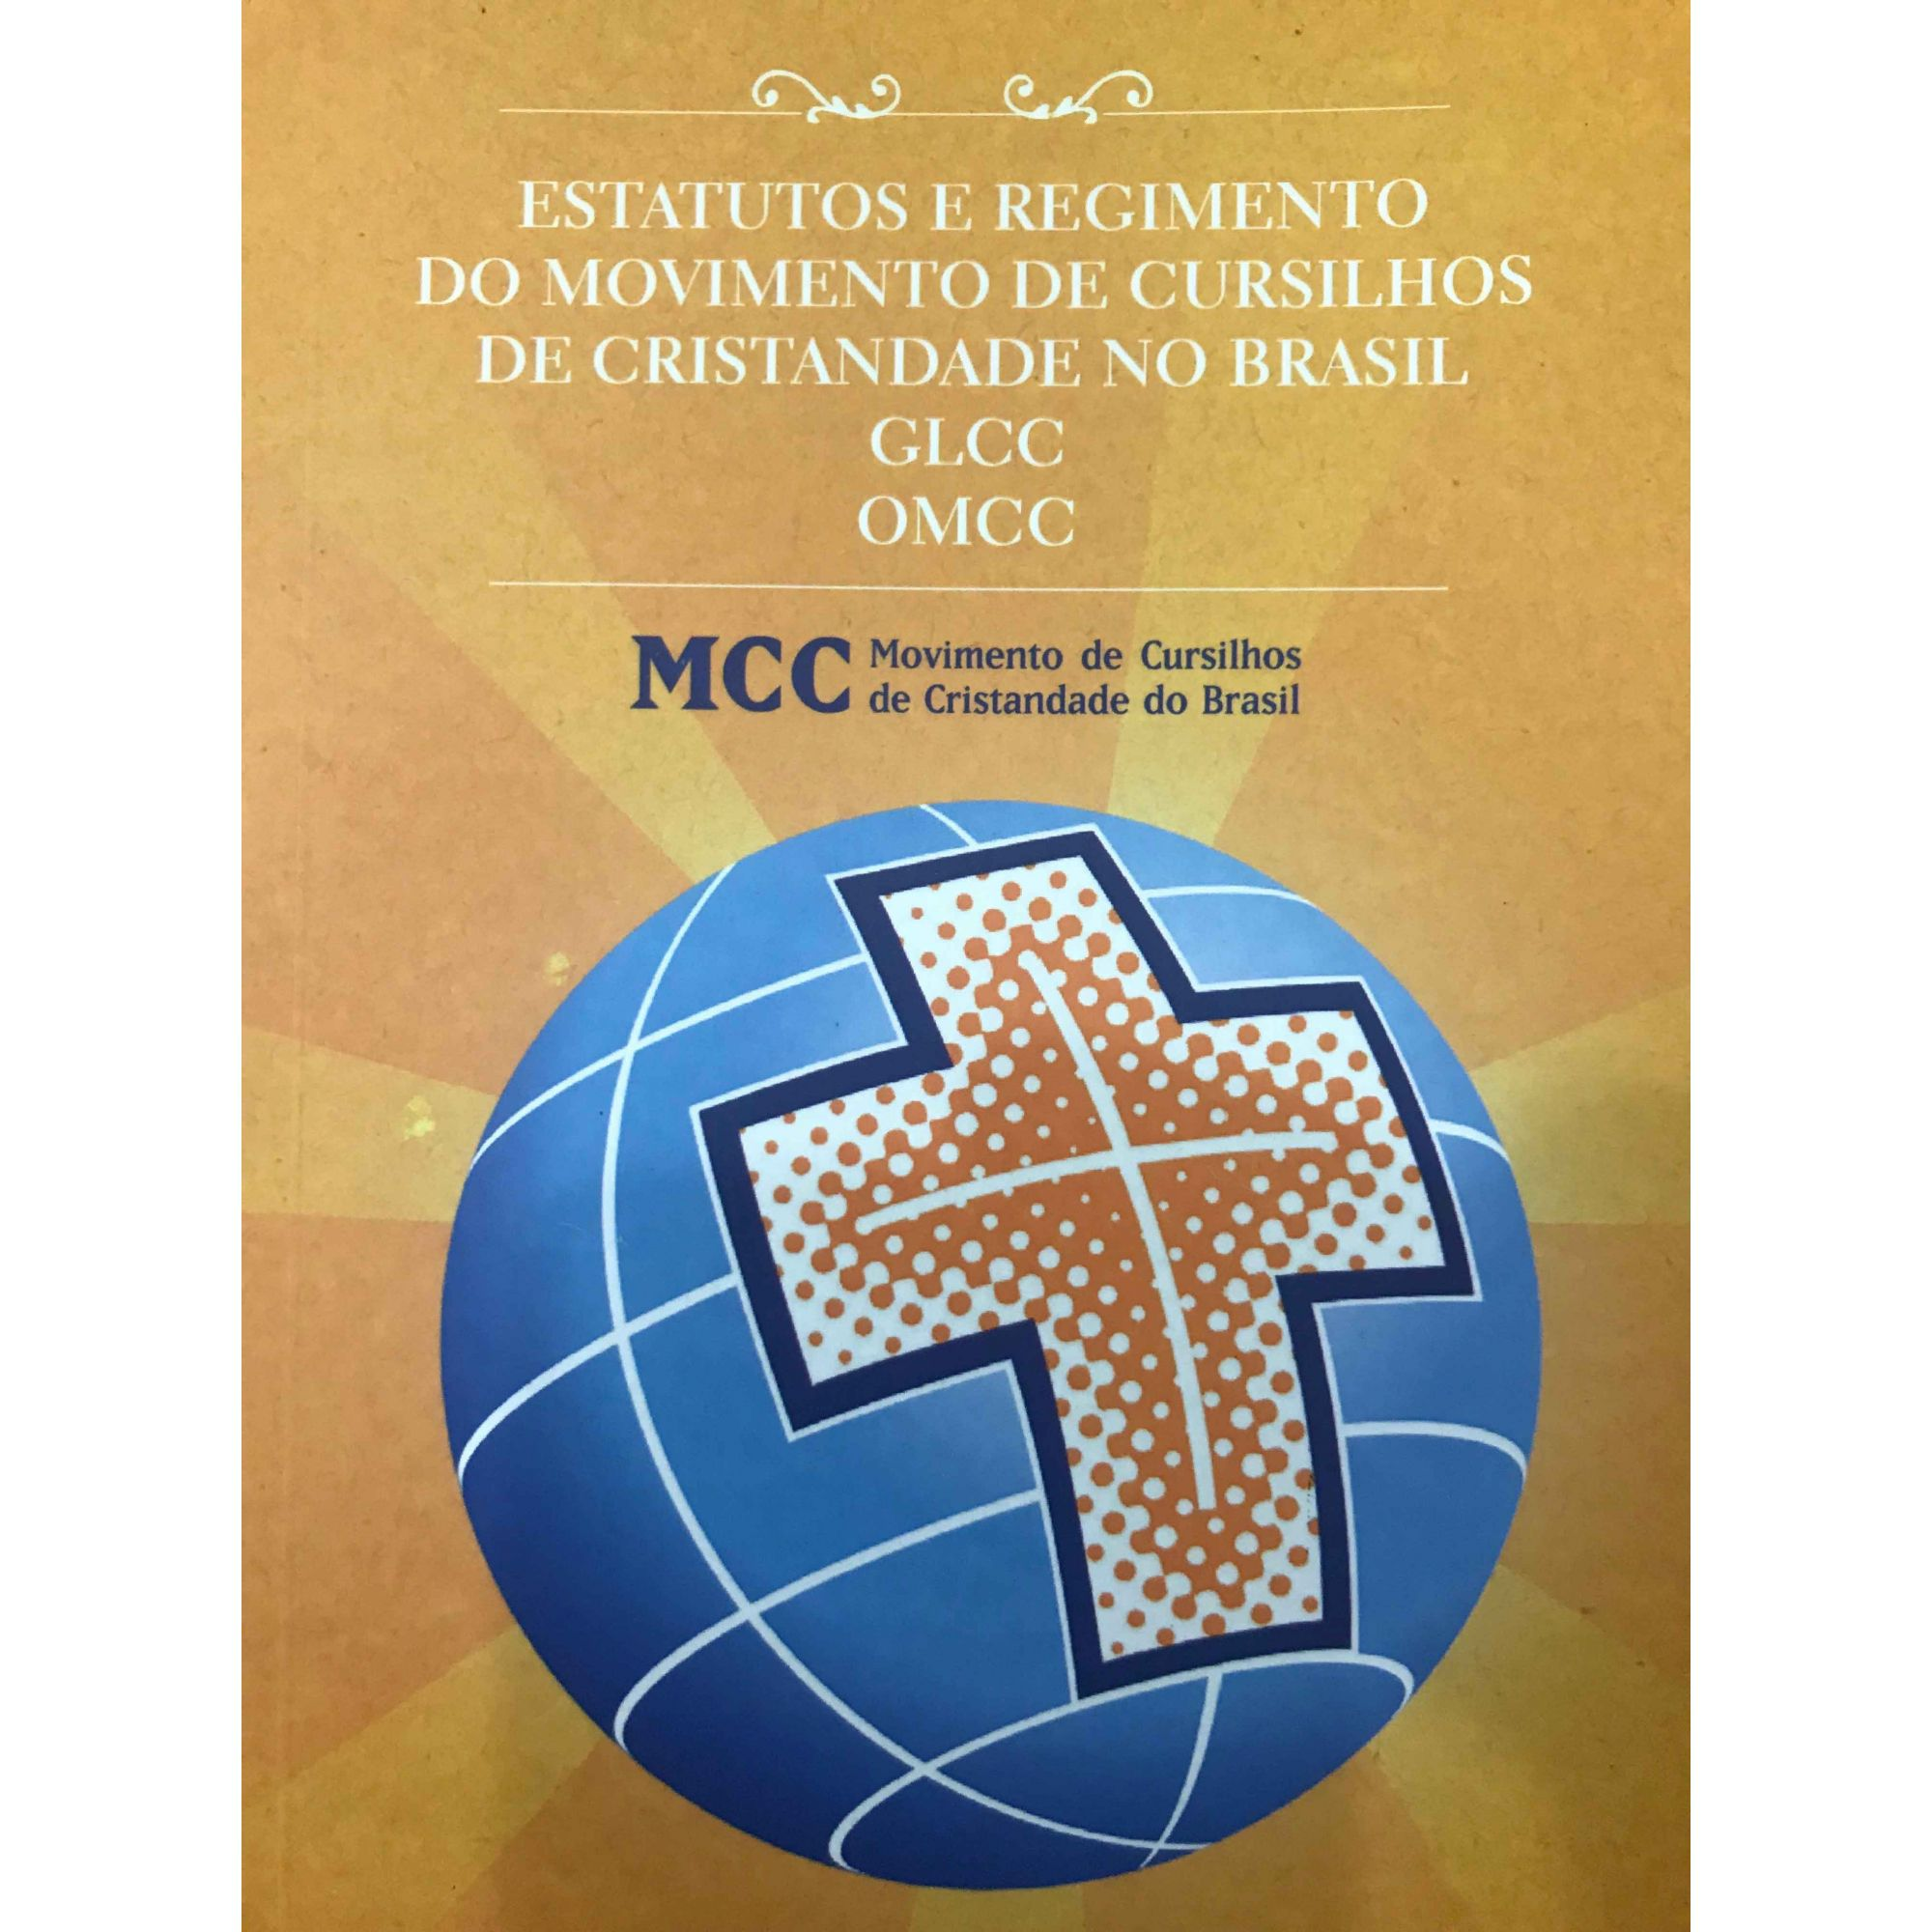 Estatuto e Regimentos do MCC no Brasil